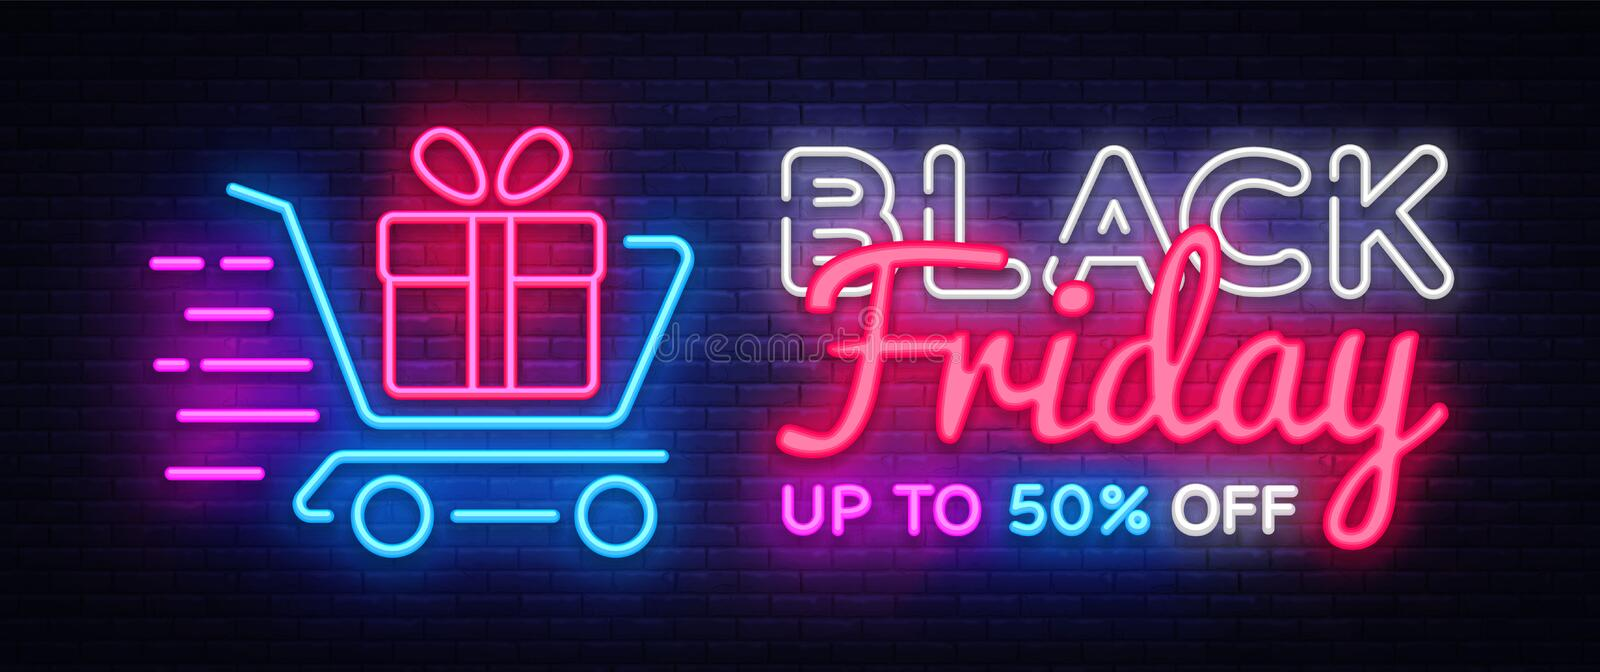 Black Friday Sale neon text vector design template. Black Friday Sale neon logo, light banner design element colorful stock illustration